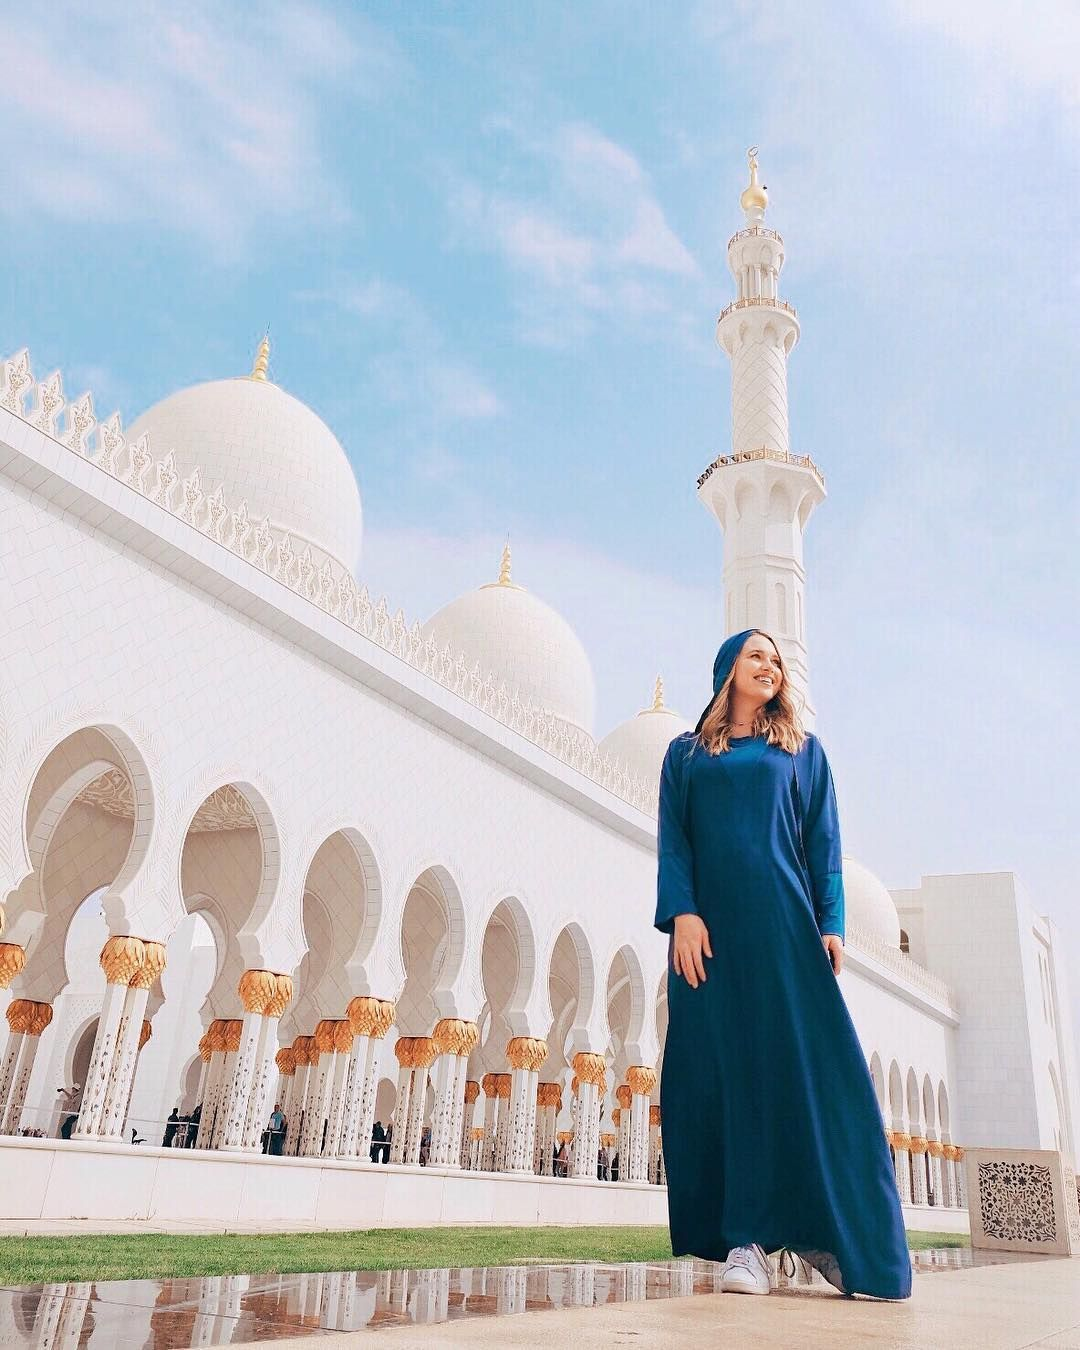 Visiting Shiekh Zayed Grand Mosque On A Day Trip To Abu Dhabi One